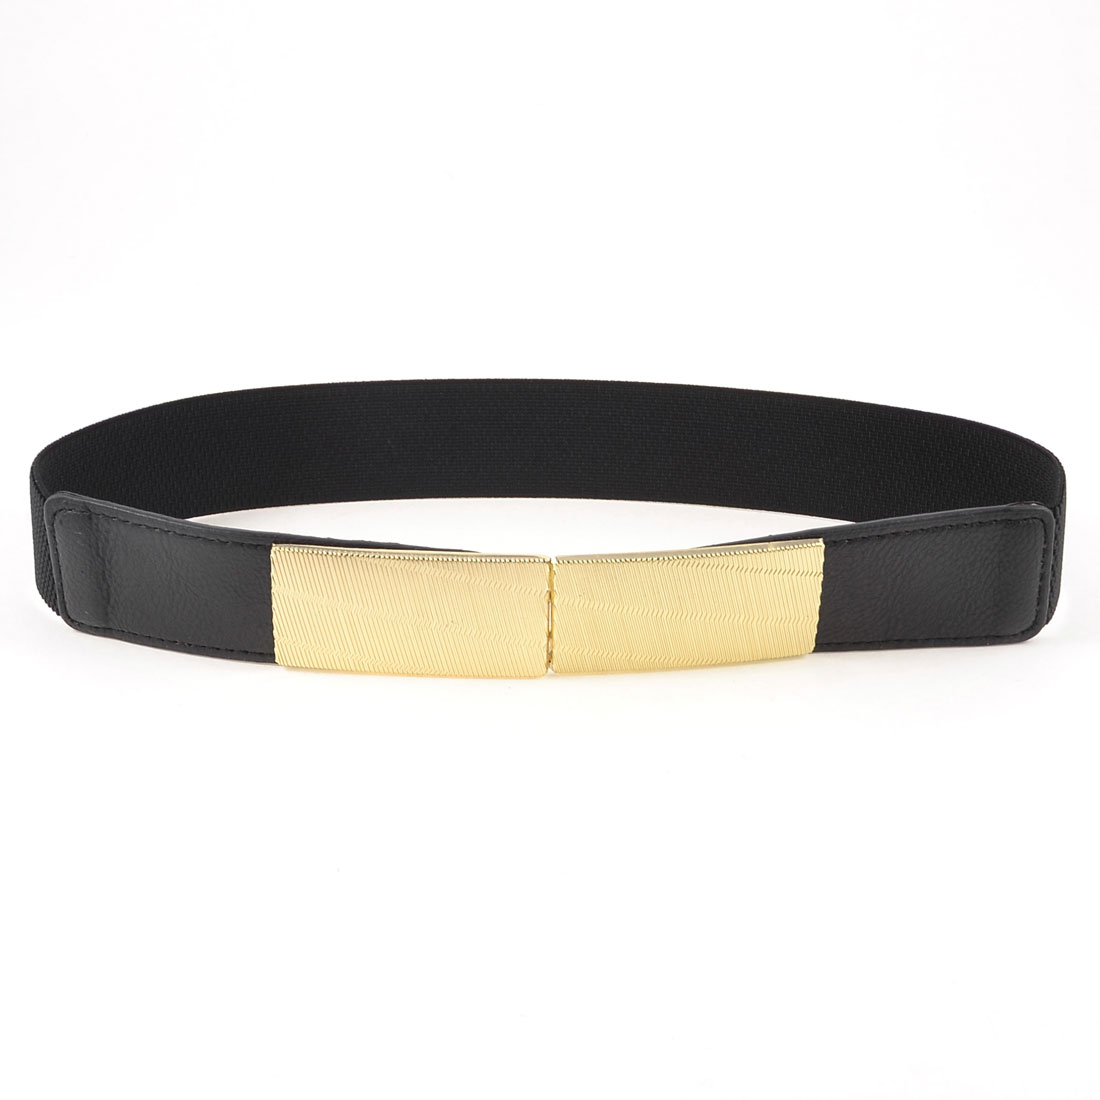 Gold Tone Interlocking Buckle Black Elastic Cinch Belt Band for Lady